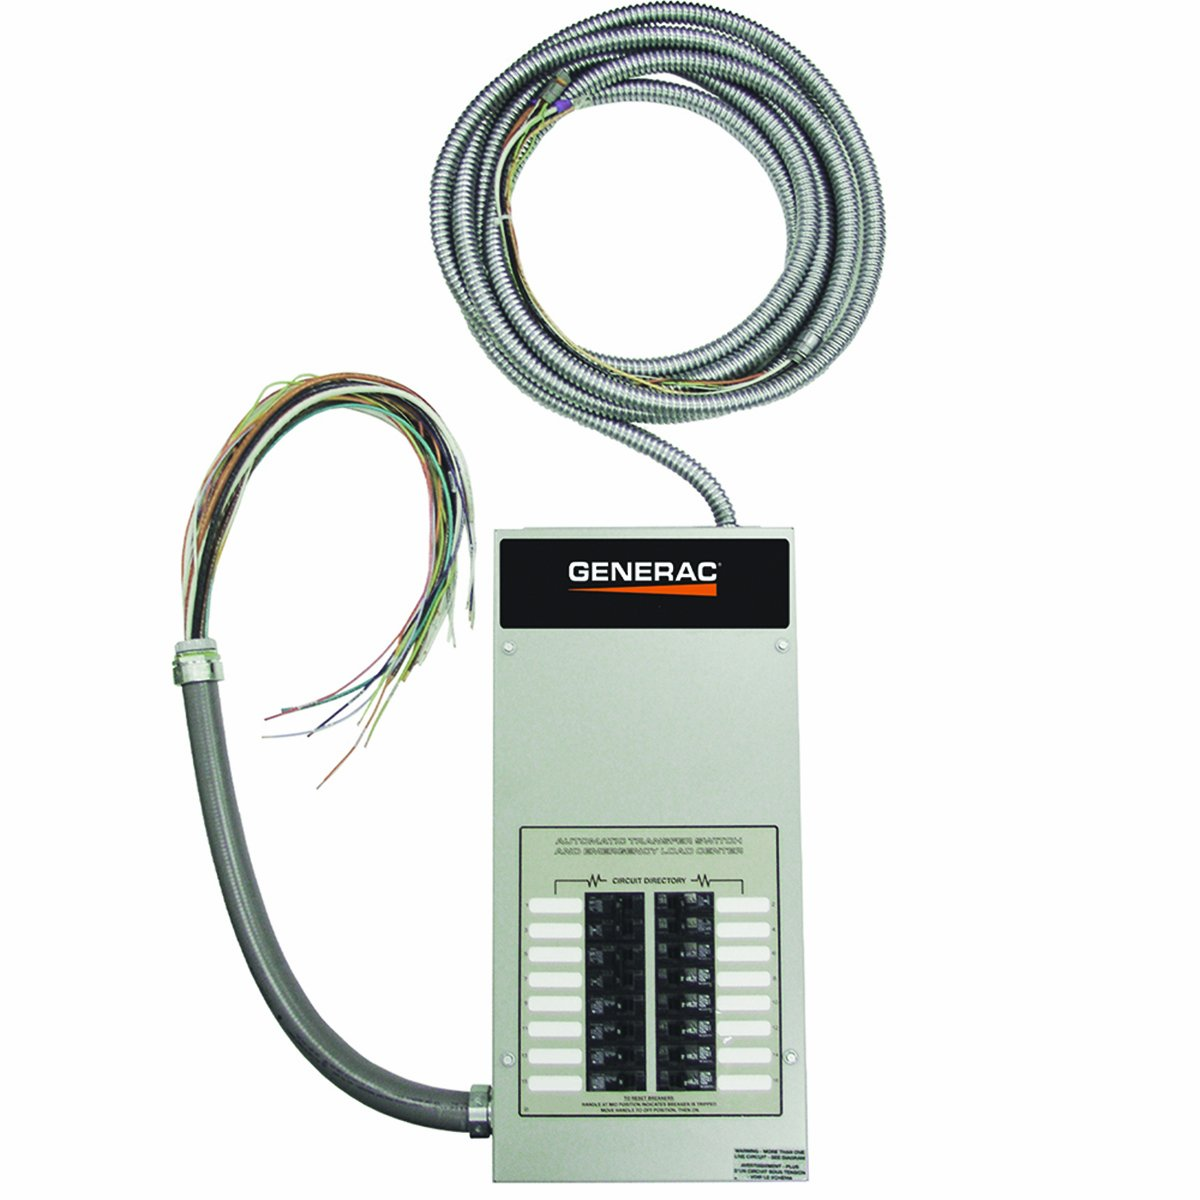 generac whole house transfer switch wiring diagram generac amazon com generac rtg16eza1 automatic transfer switch 16 circuit on generac whole house transfer switch wiring